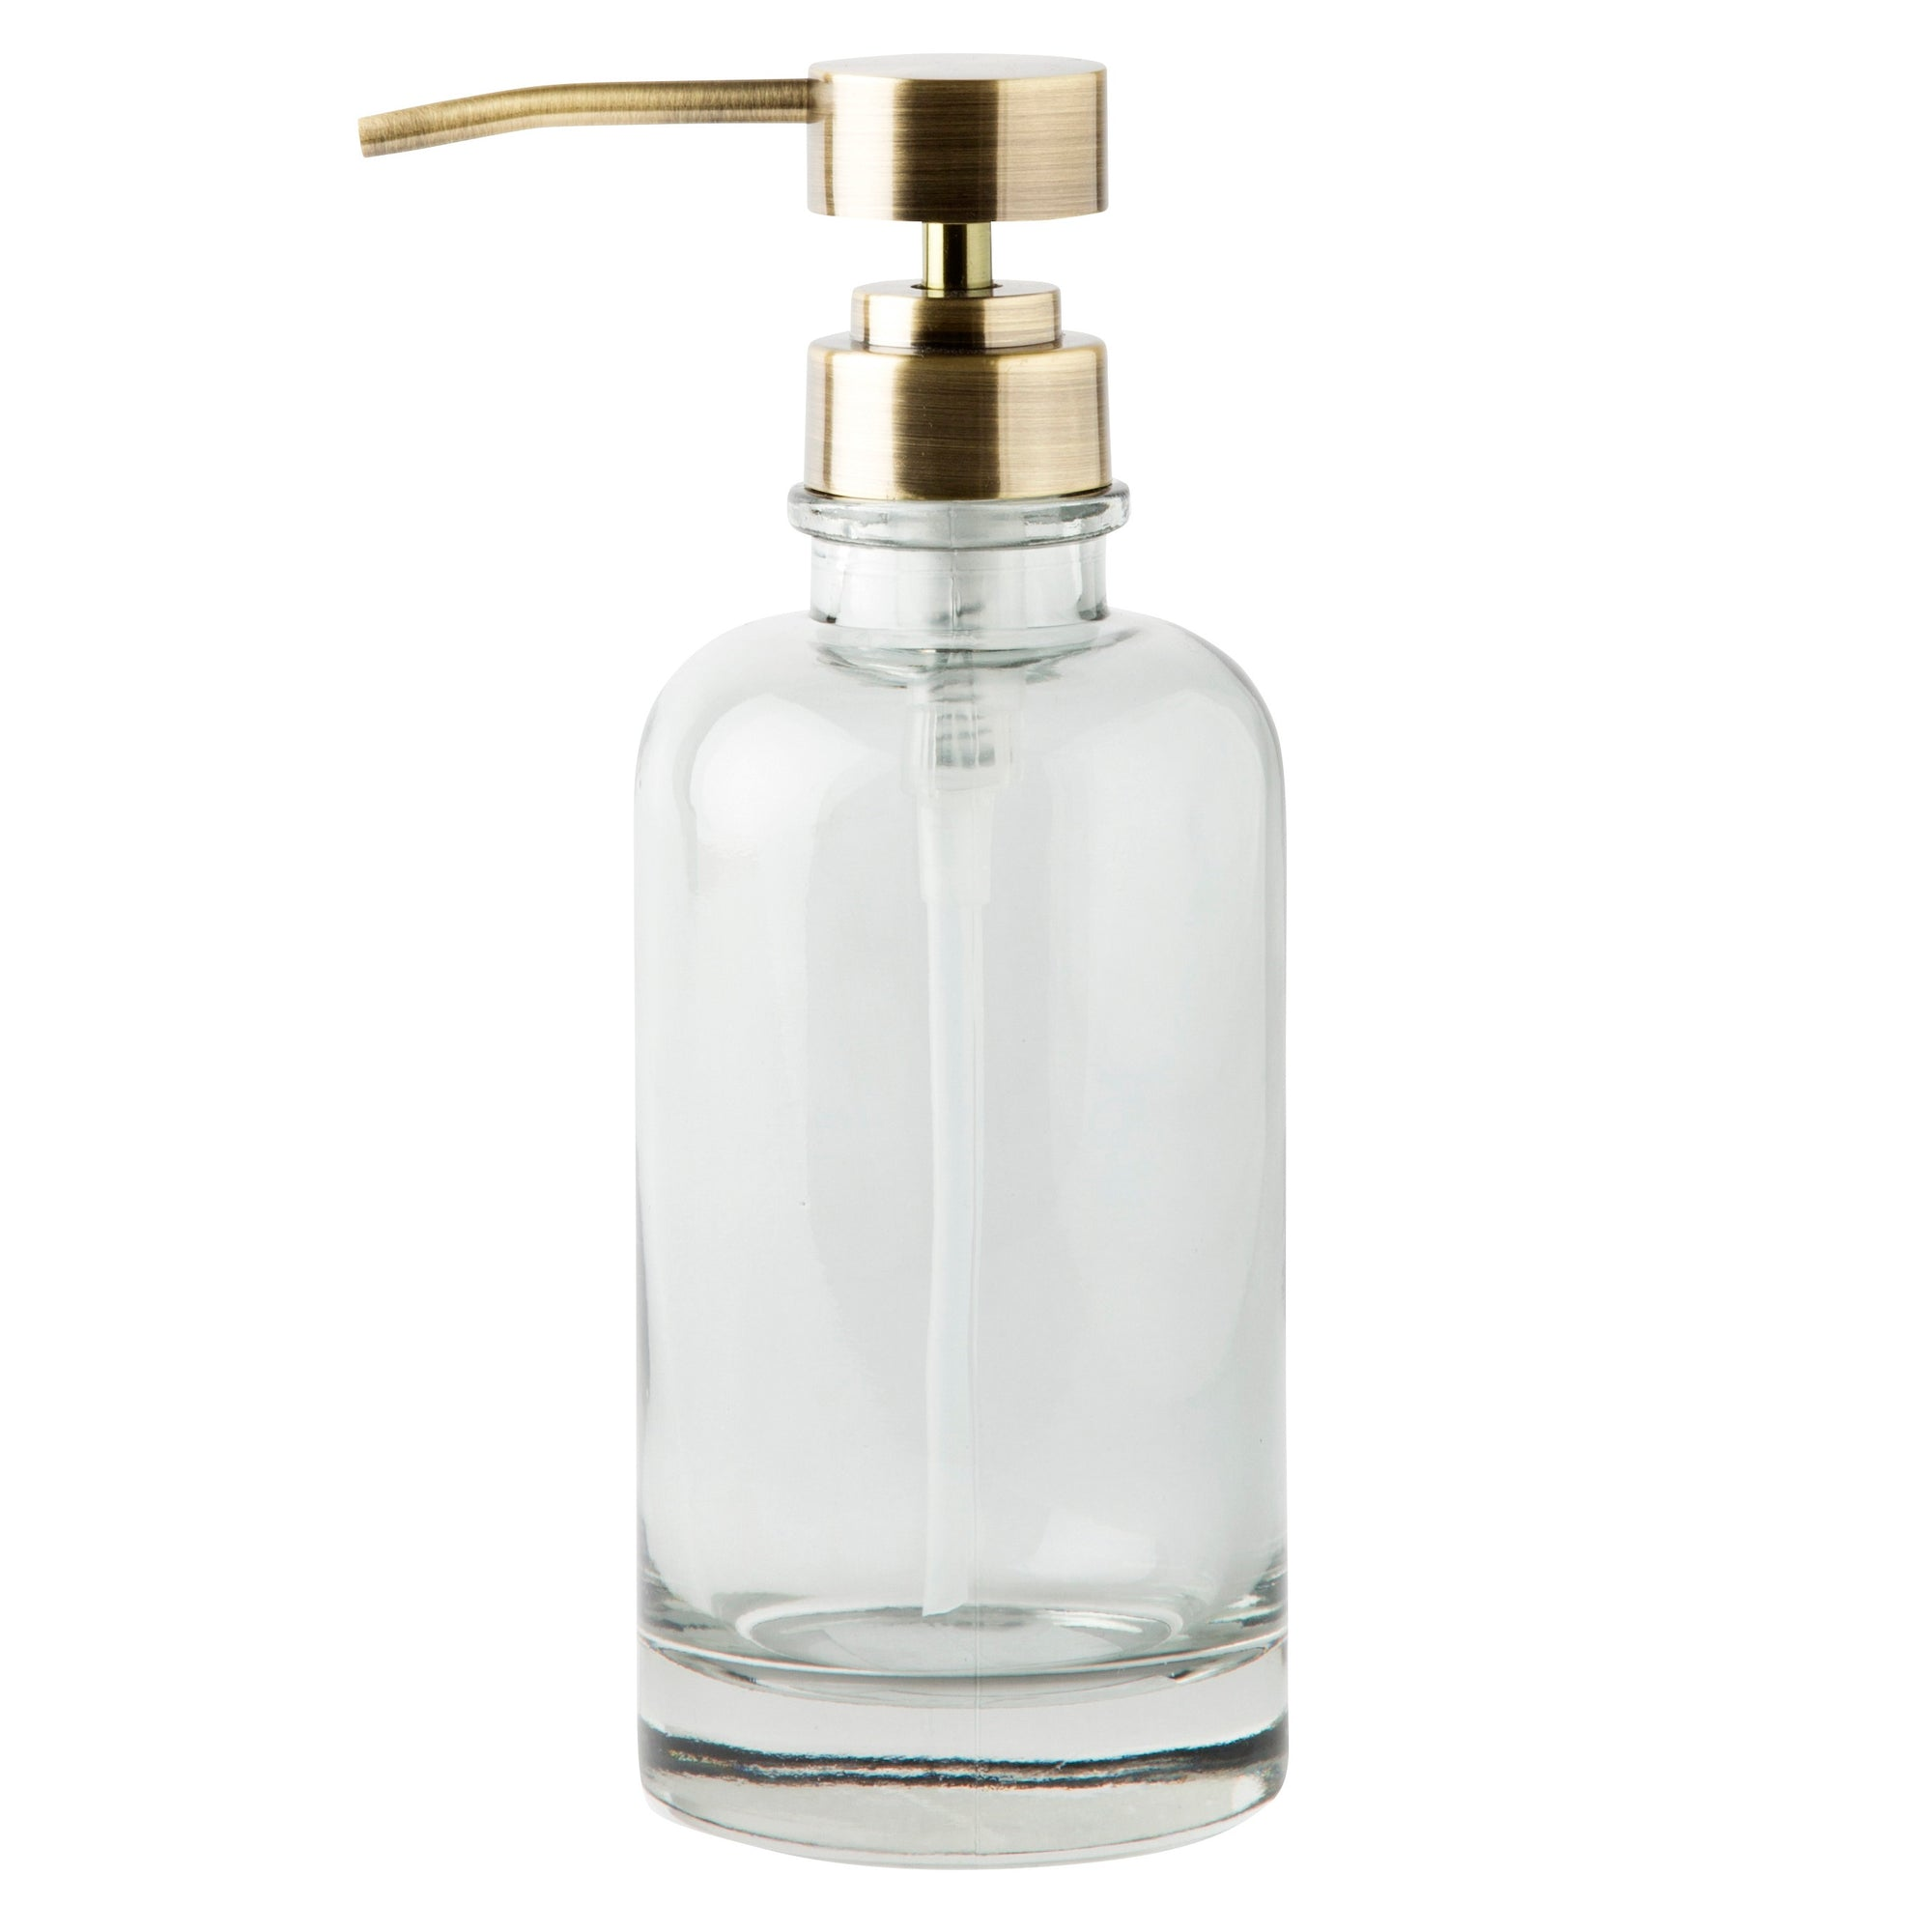 VENEZIA Soap Dispenser- Grey